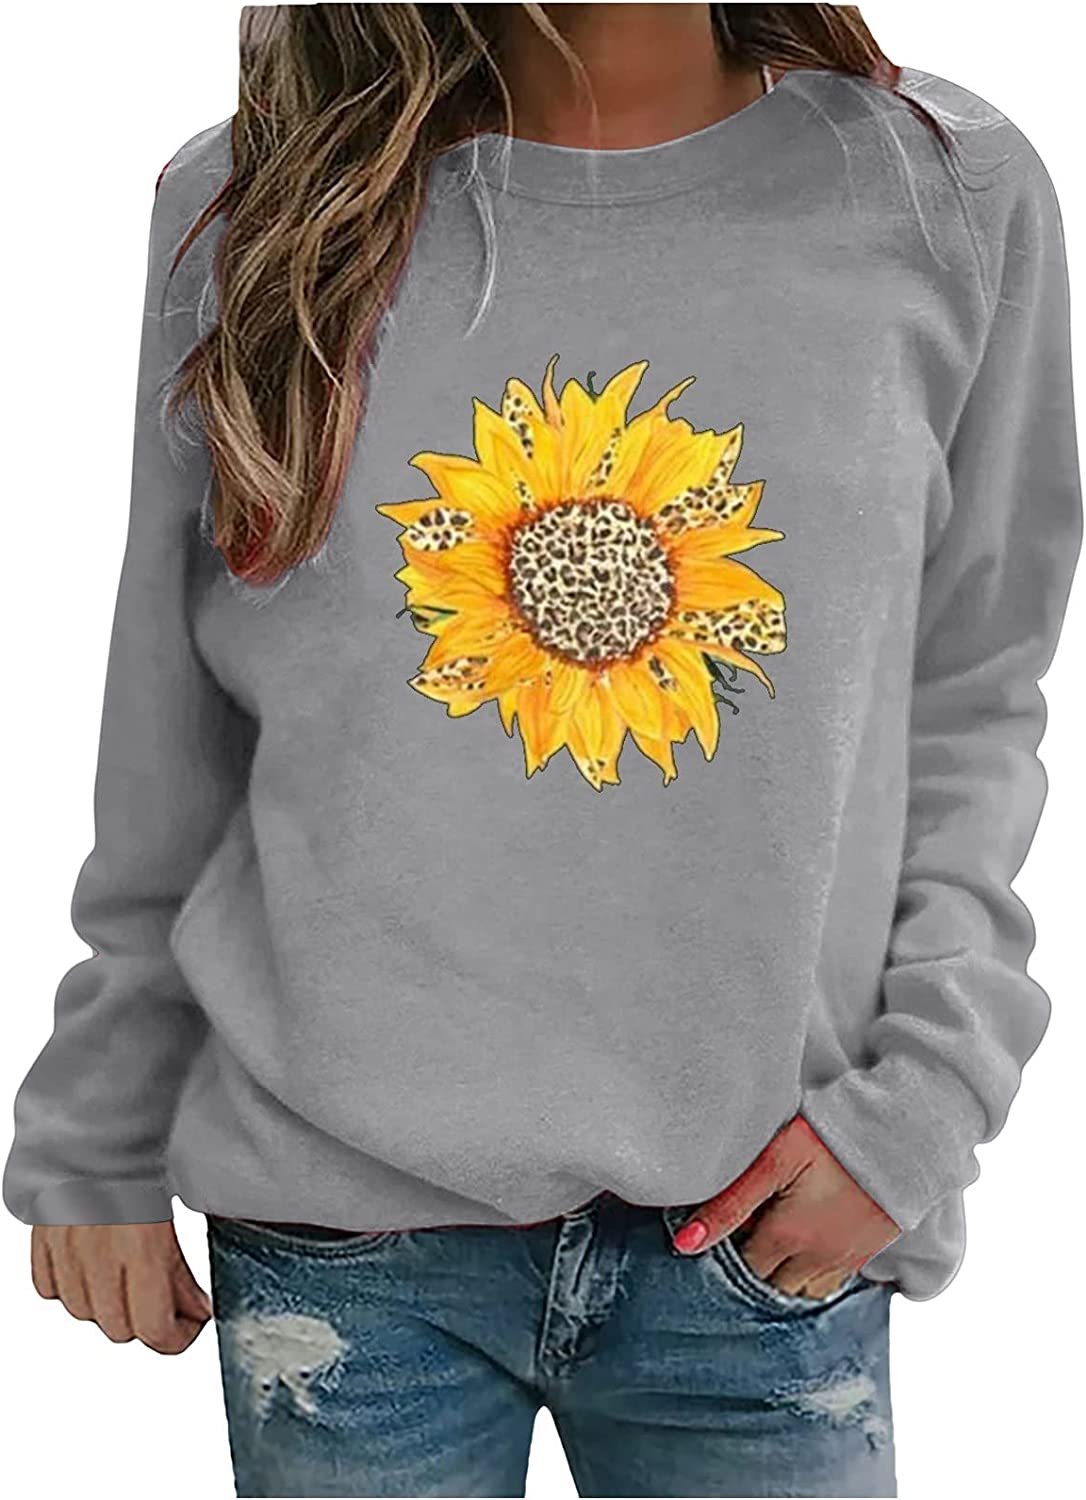 Auwer Women's Leopard Sunflower Print Tops Round Neck Long Sleeved T-Shirt Basic Loose Fit Blouses Casual Pullover Tunics